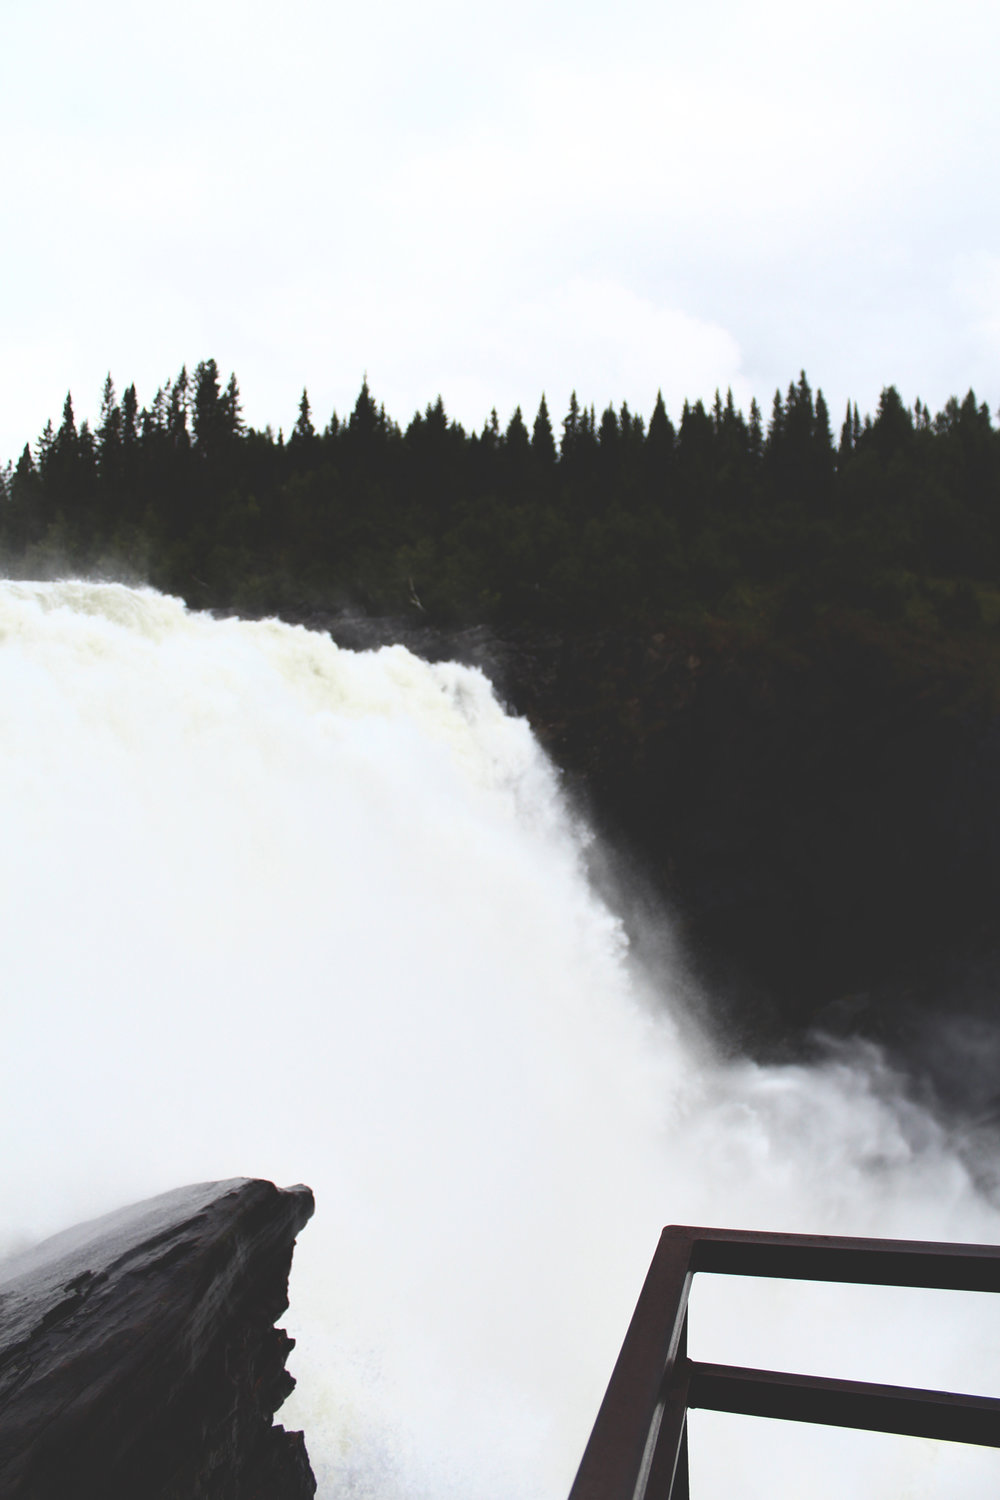 waterfall in sweden.jpg